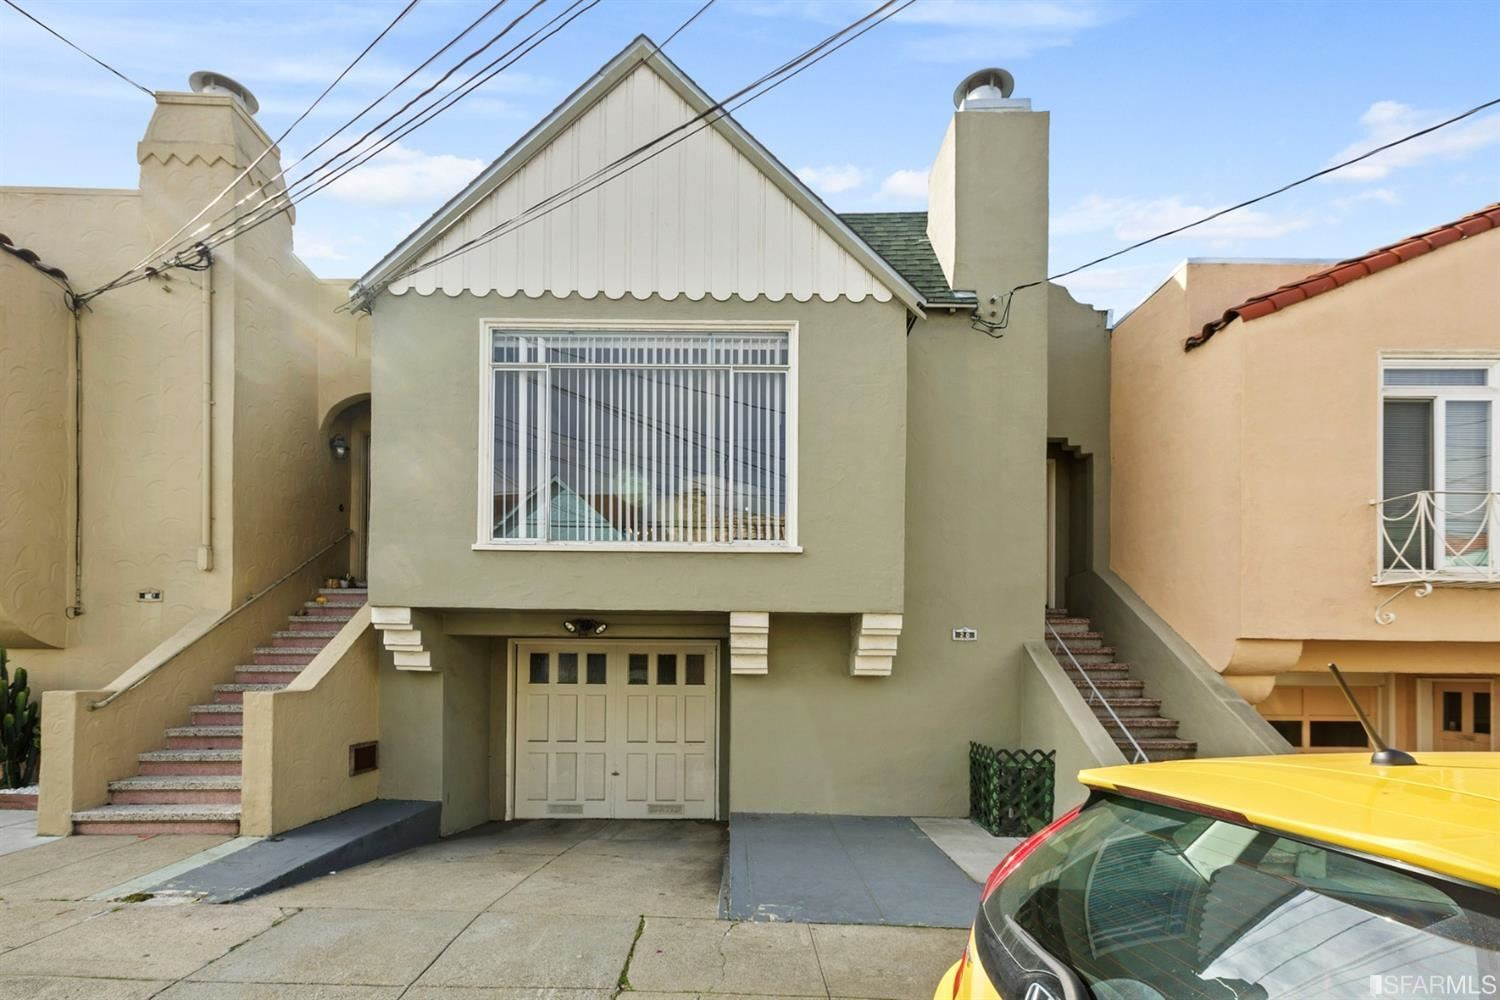 20 Santa Fe Avenue, San Francisco, CA 94124 - #: 515649